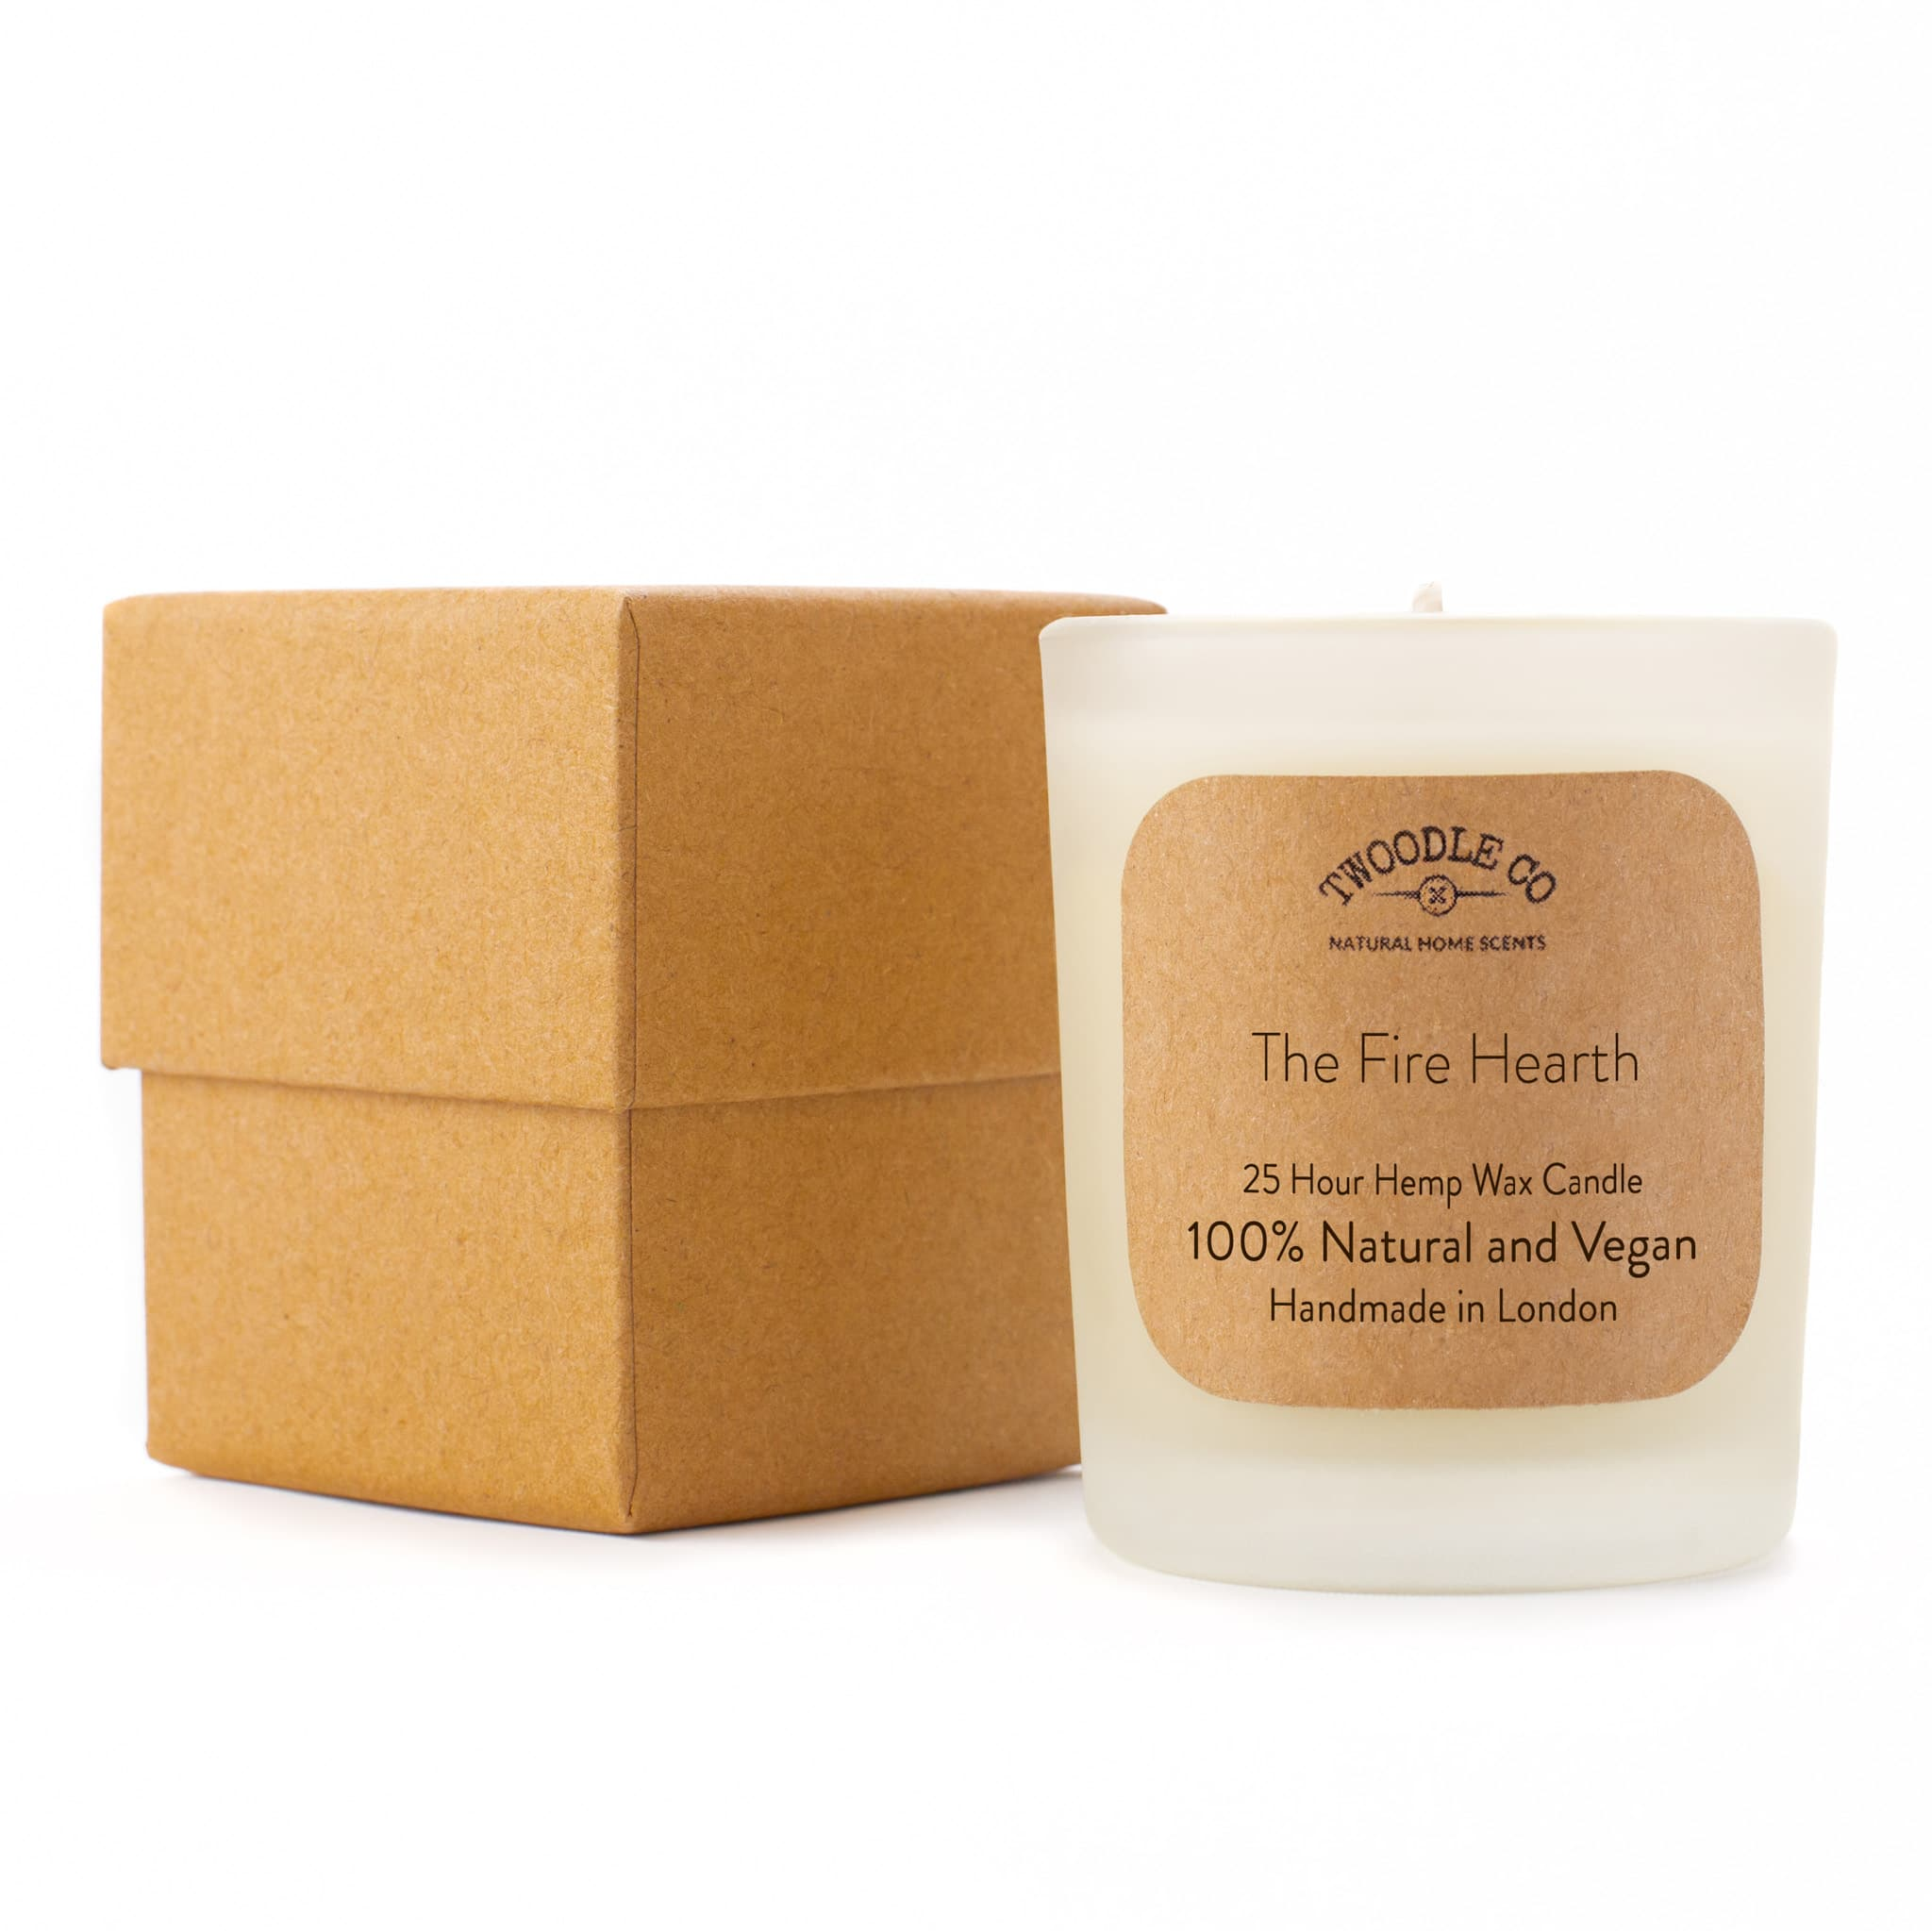 The Fire Hearth Small Scented Candle 25 Hour